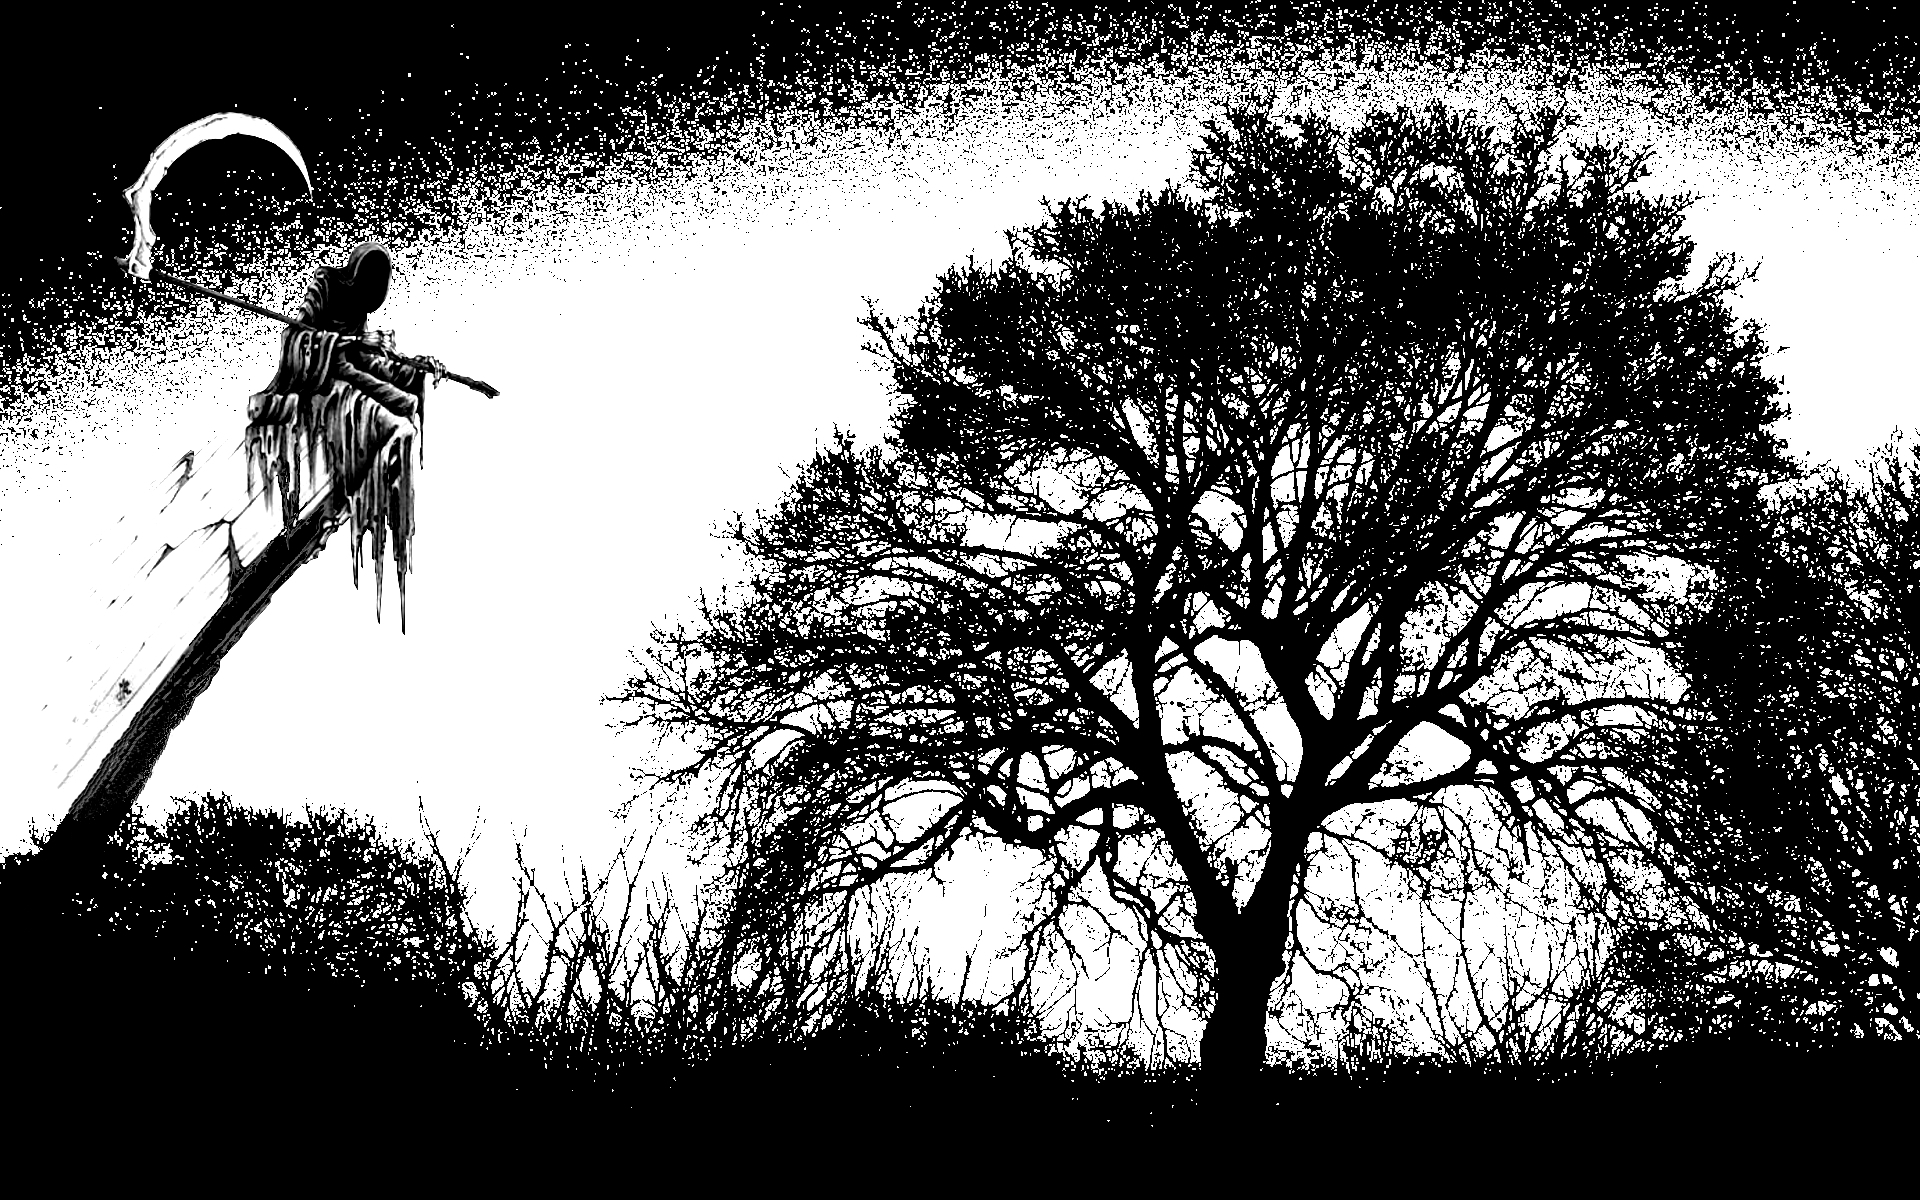 the grim reaper images Grim Reaper HD wallpaper and ...